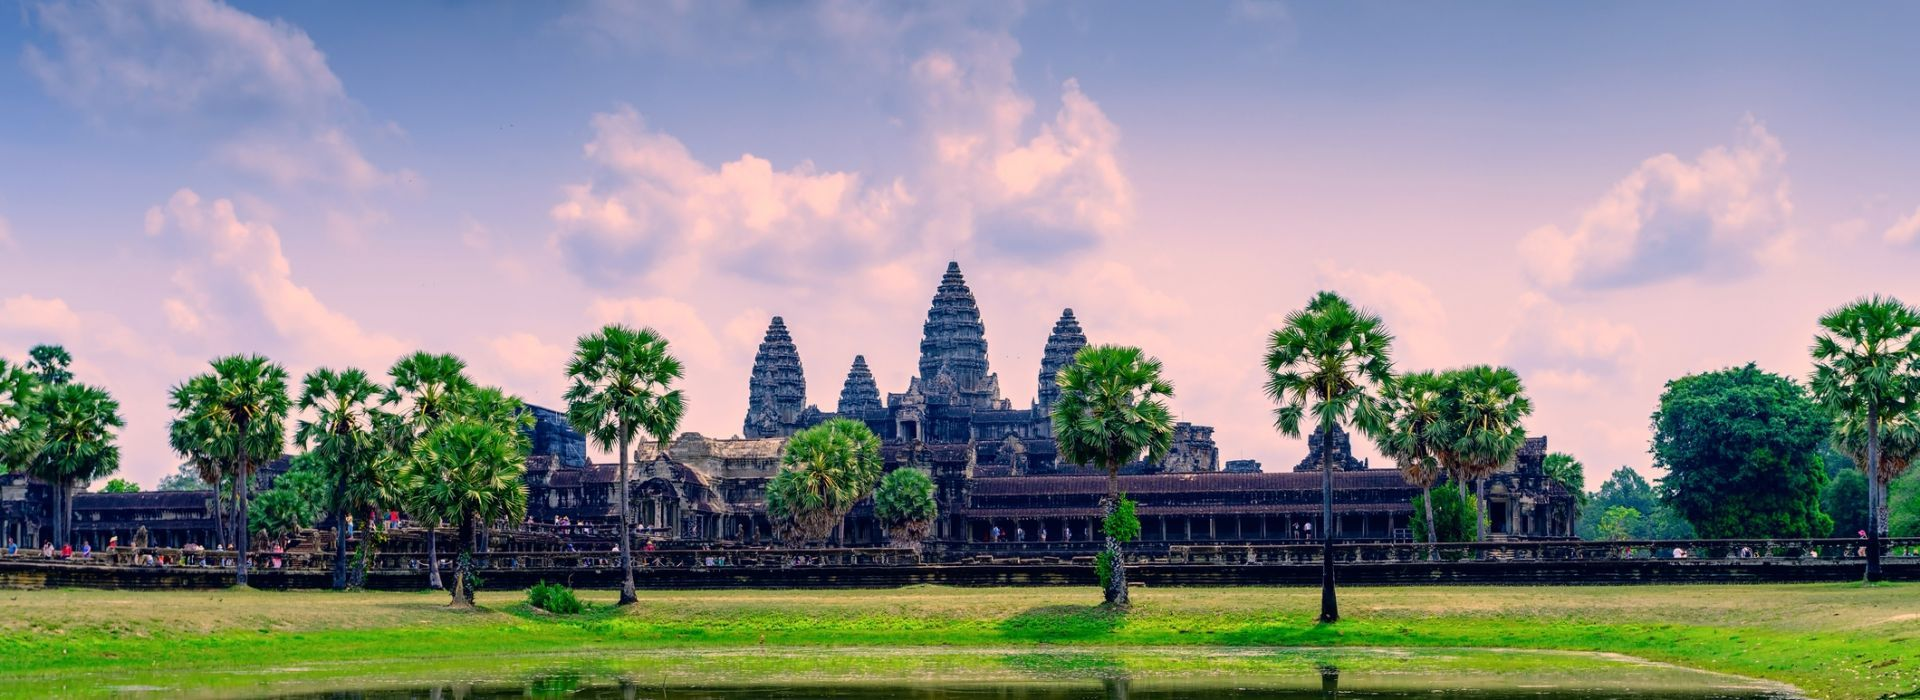 Sightseeing, attractions, culture and history Tours in Siem Reap